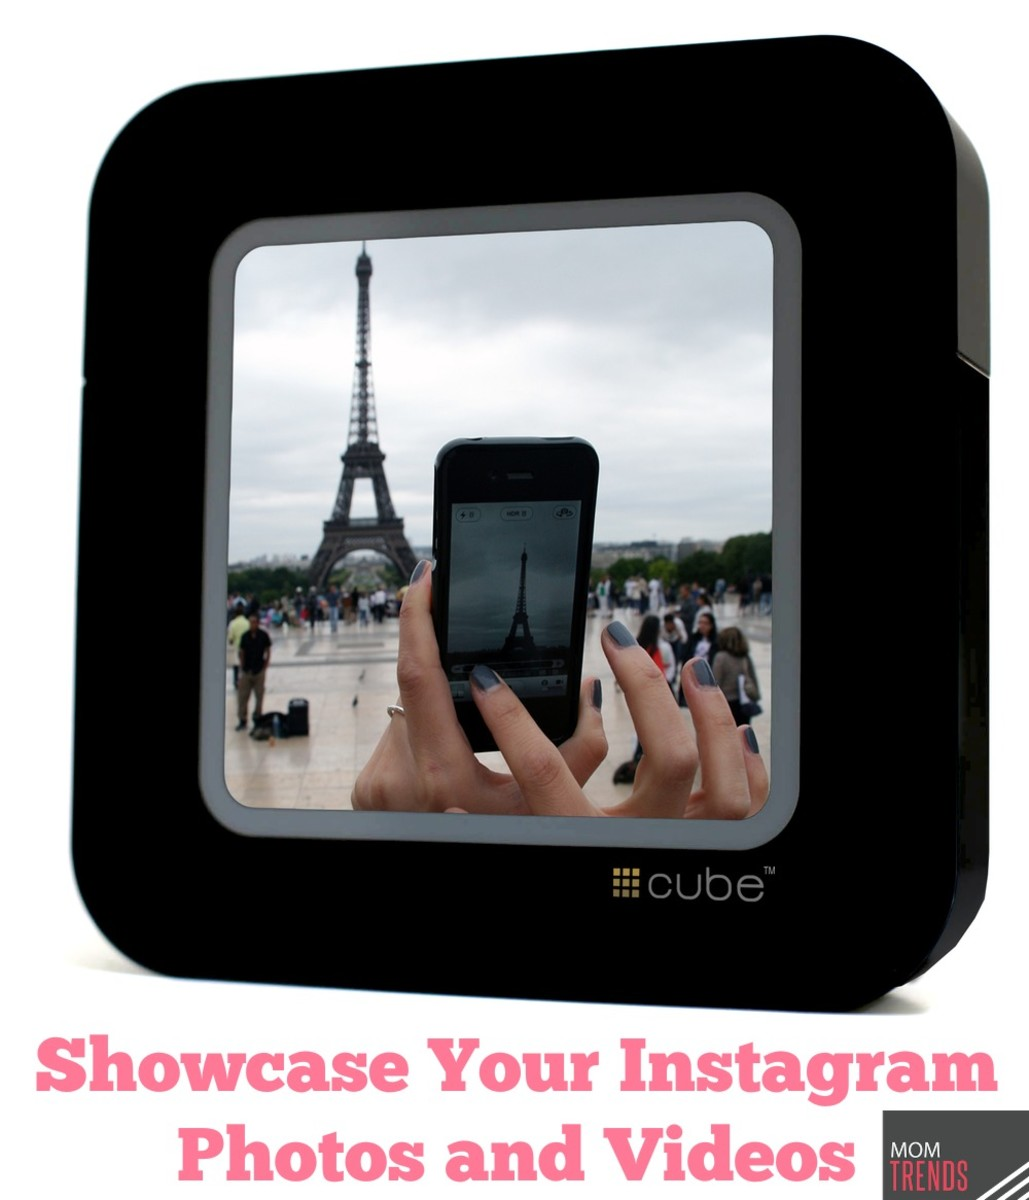 Showcase Your Instagram Photos and Videos with #Cube